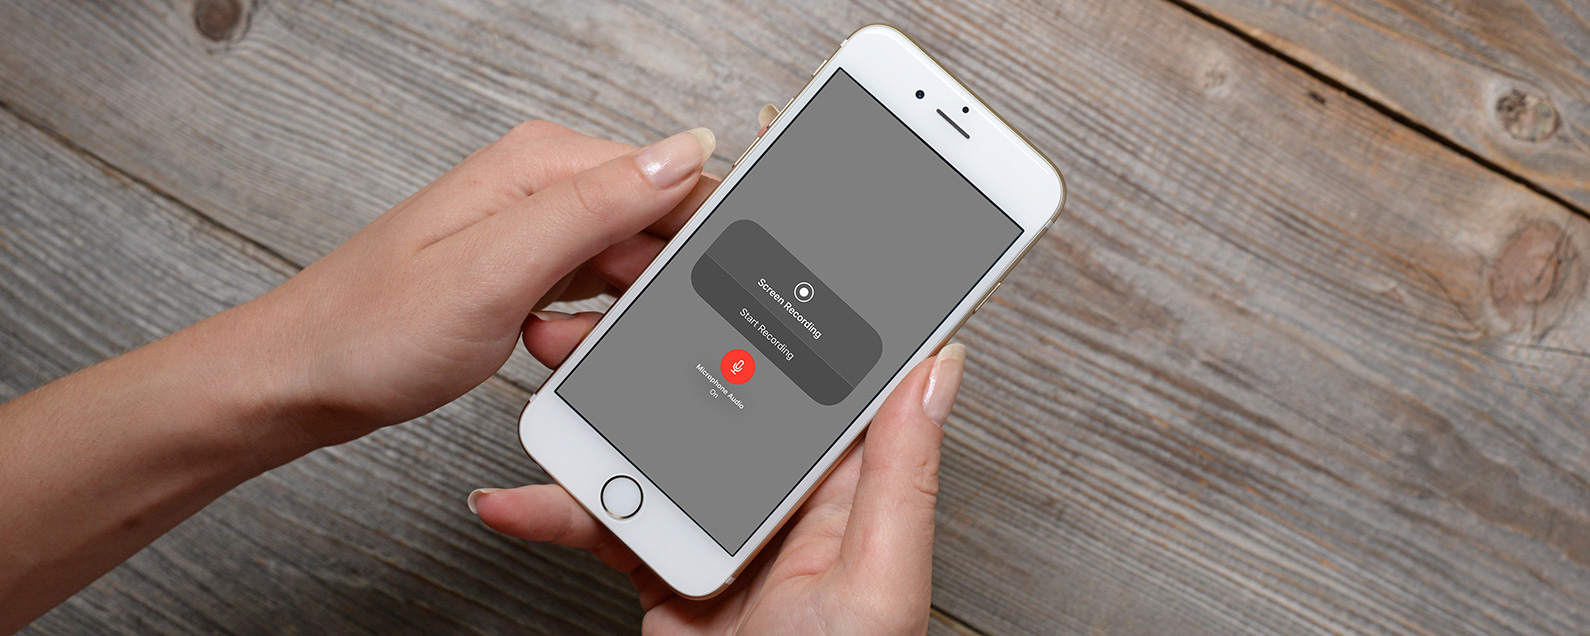 How To Screen Record With Audio On Iphone Updated For Ios 12 No Picture And My Tv